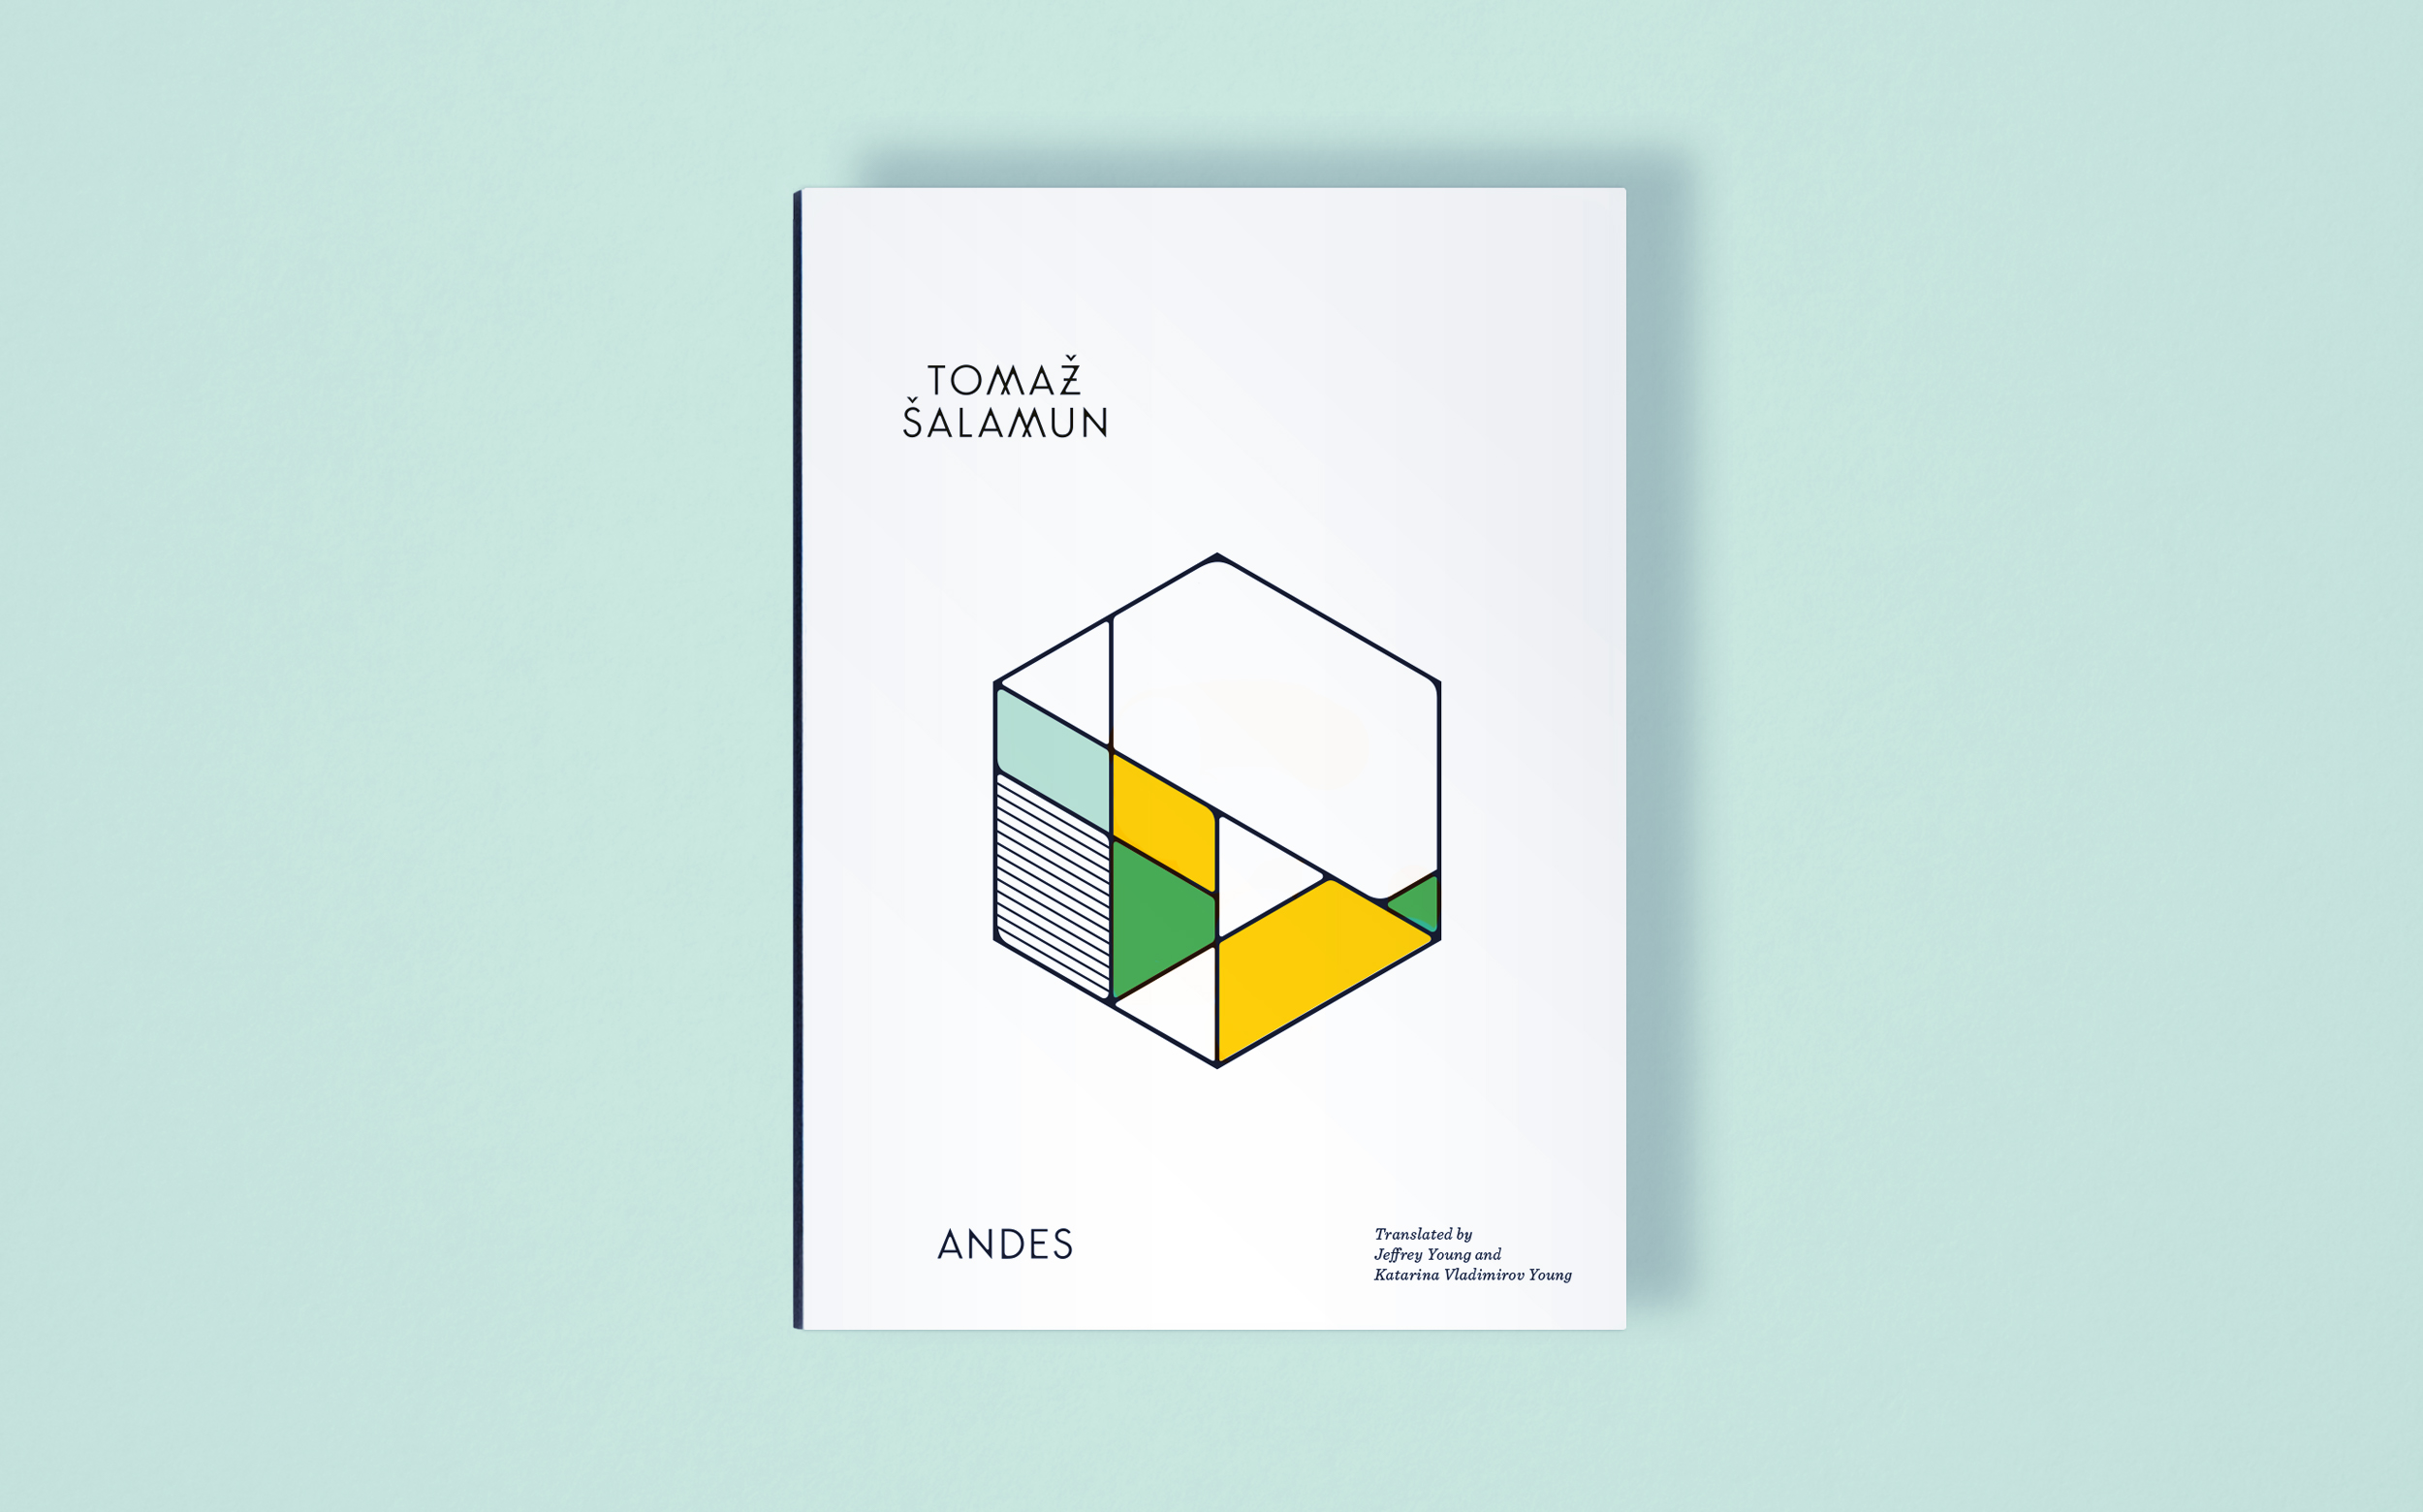 Andes by Tomaz Salamun, book cover design and creative direction by Abby Haddican Studio